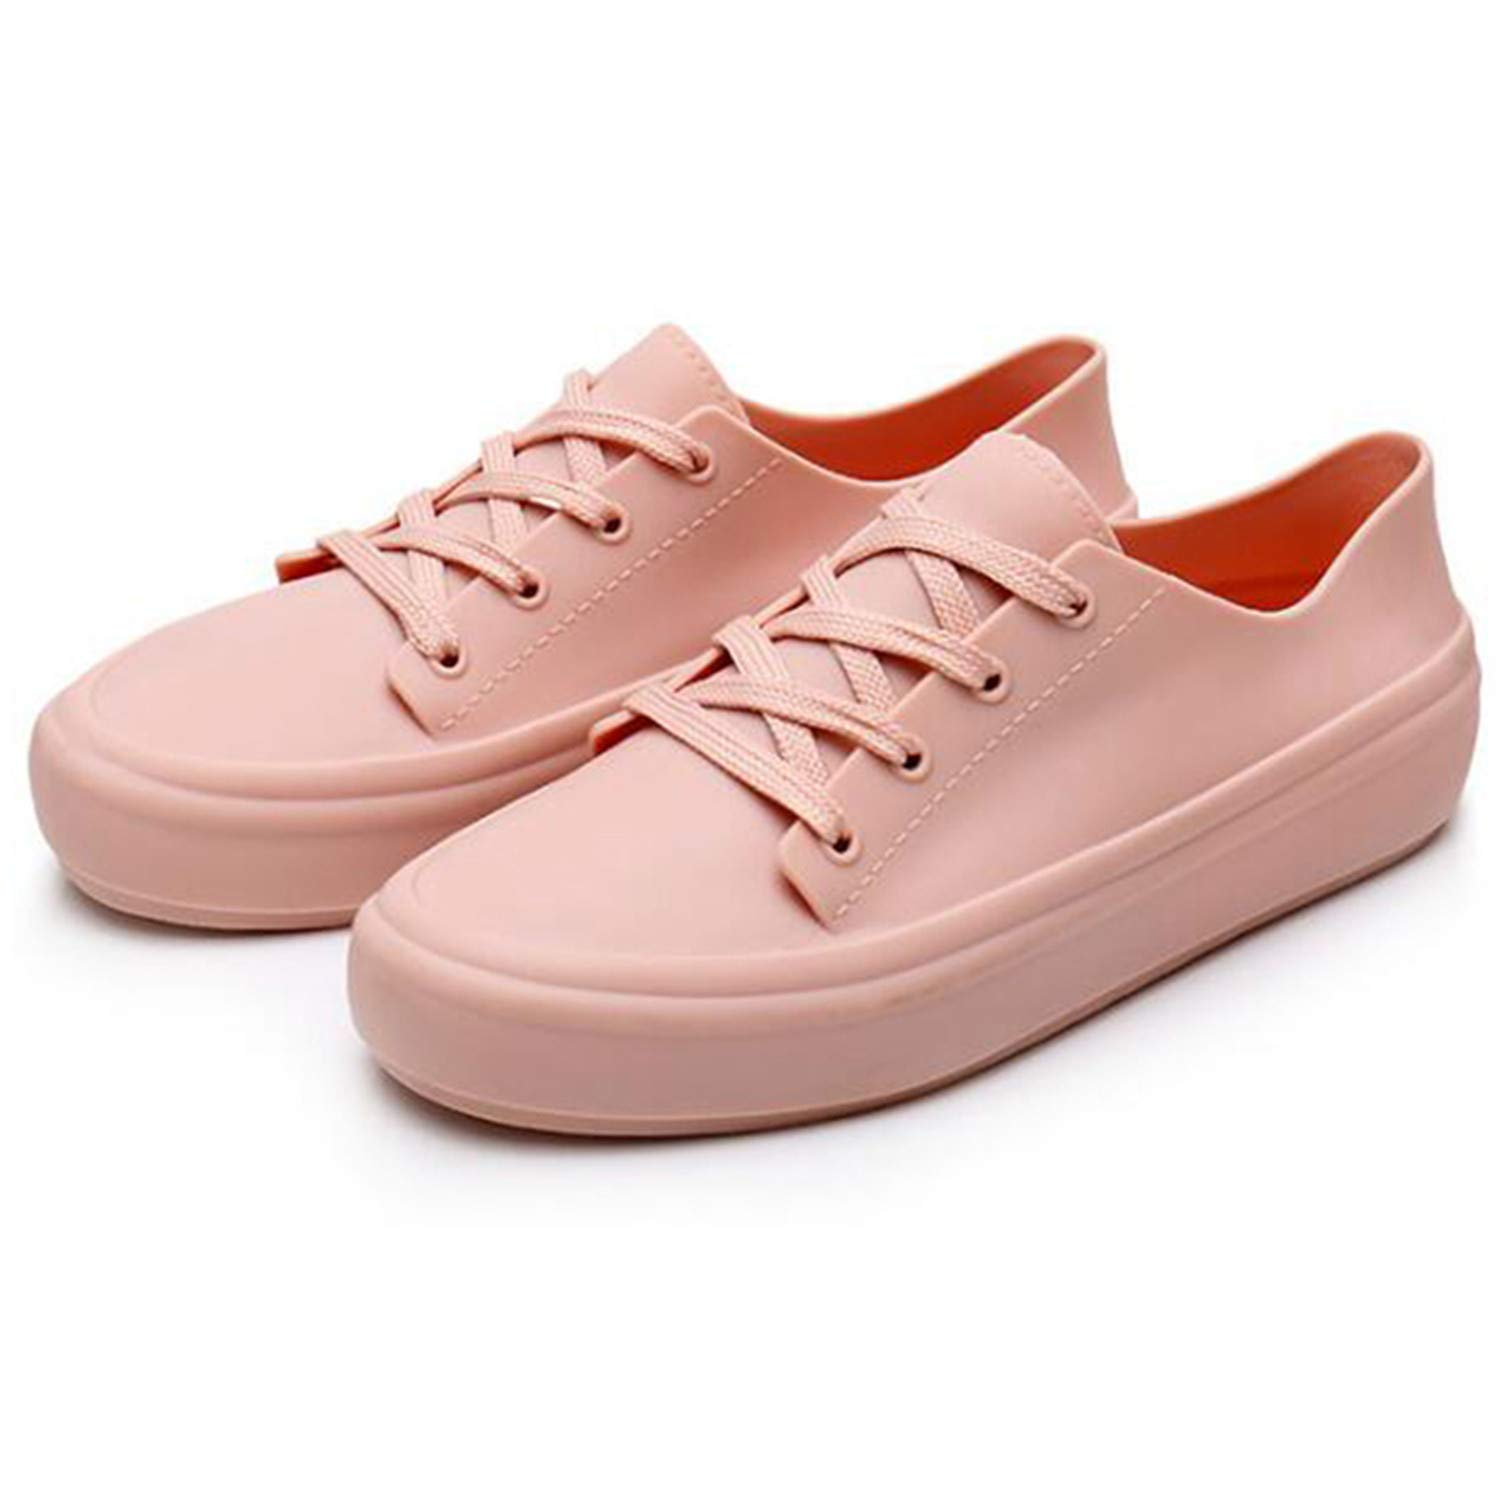 Habitaen Waterproof Women Sneakers White Jelly Shoes Plastic Shoes Platform Lace Up PVC Women Flats